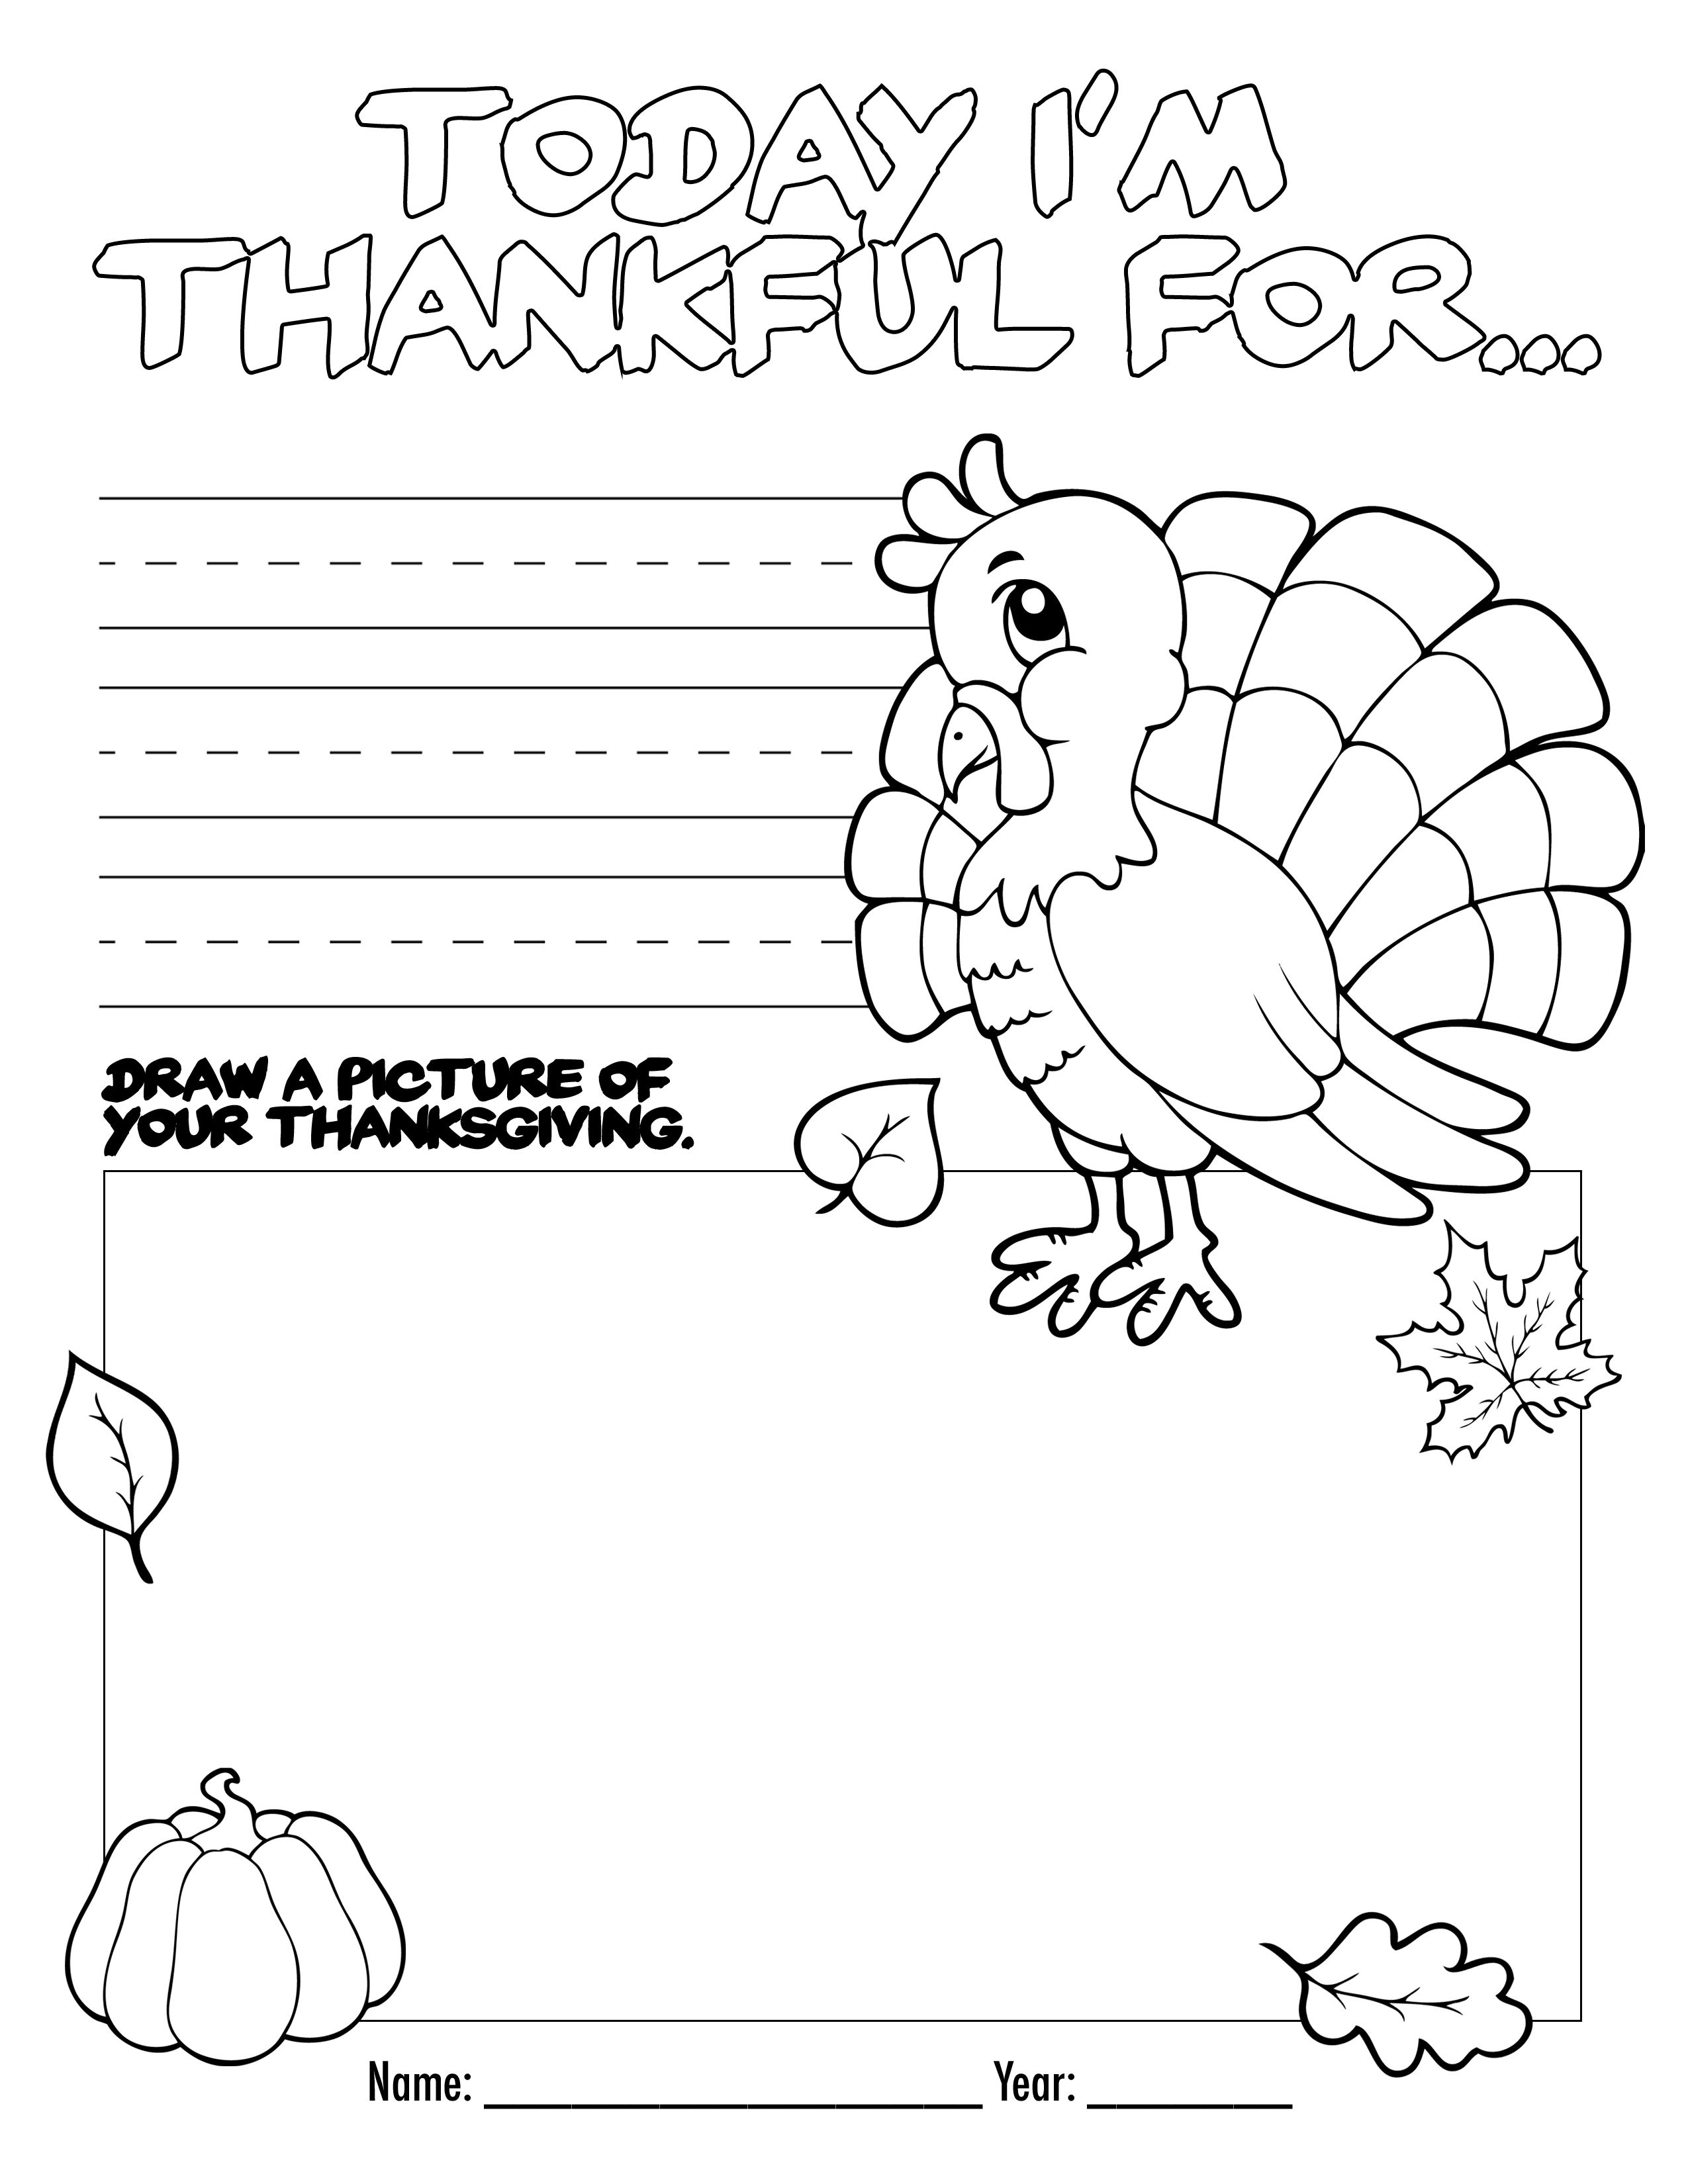 Thanksgiving Coloring Book Free Printable For The Kids - Free Printable Thanksgiving Activities